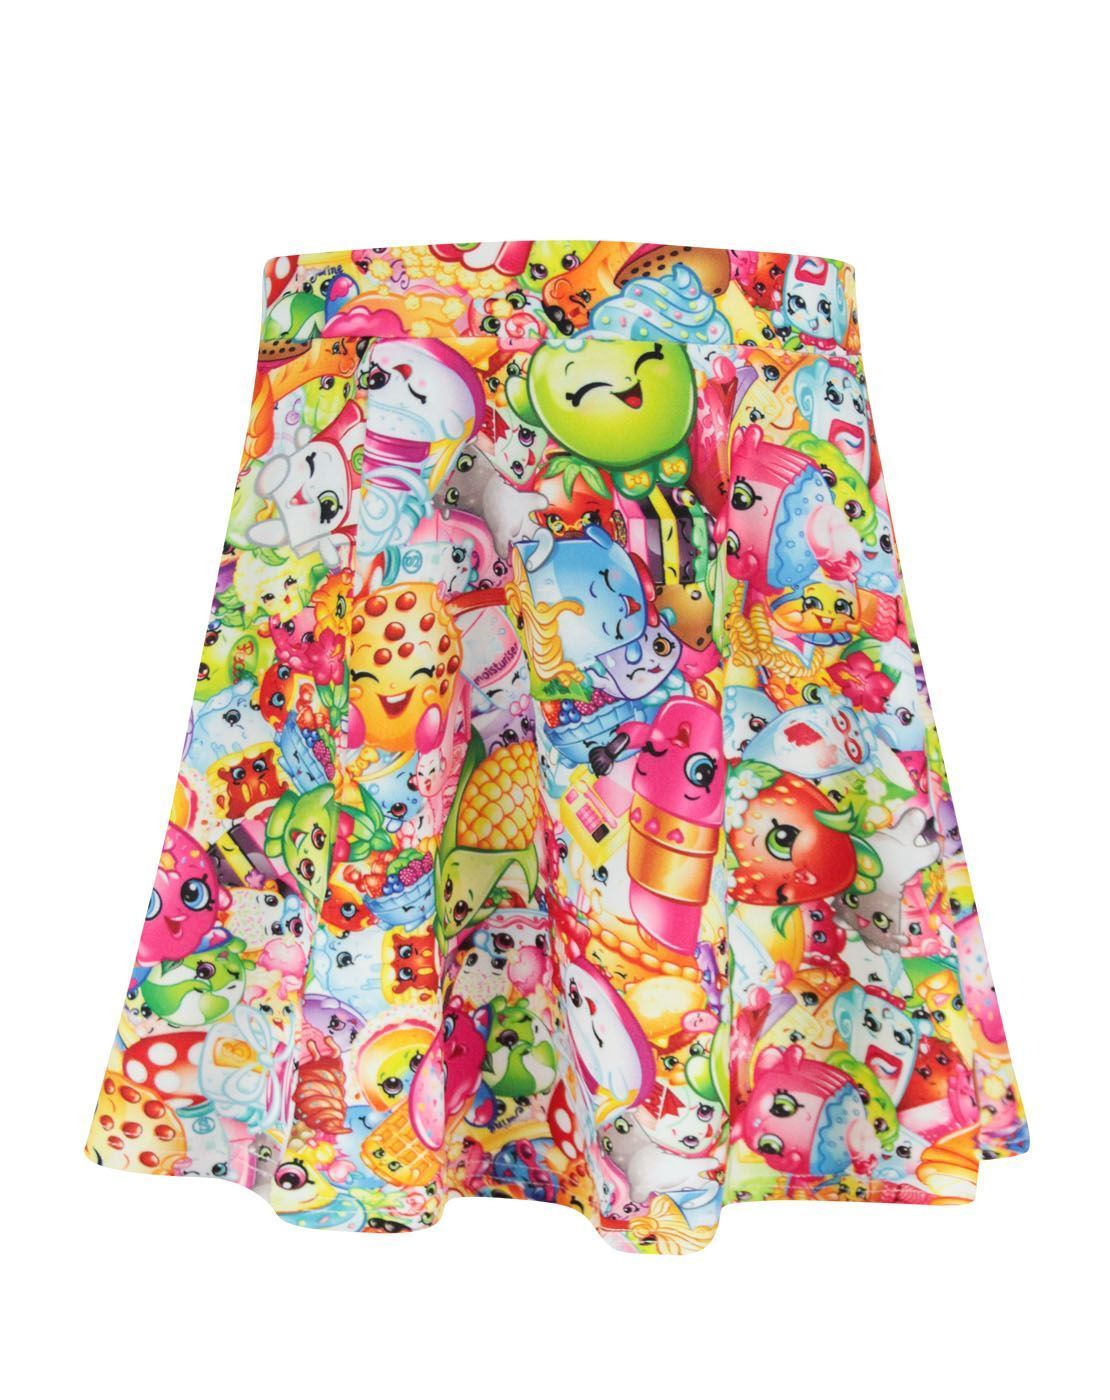 Shopkins Girl's Skirt